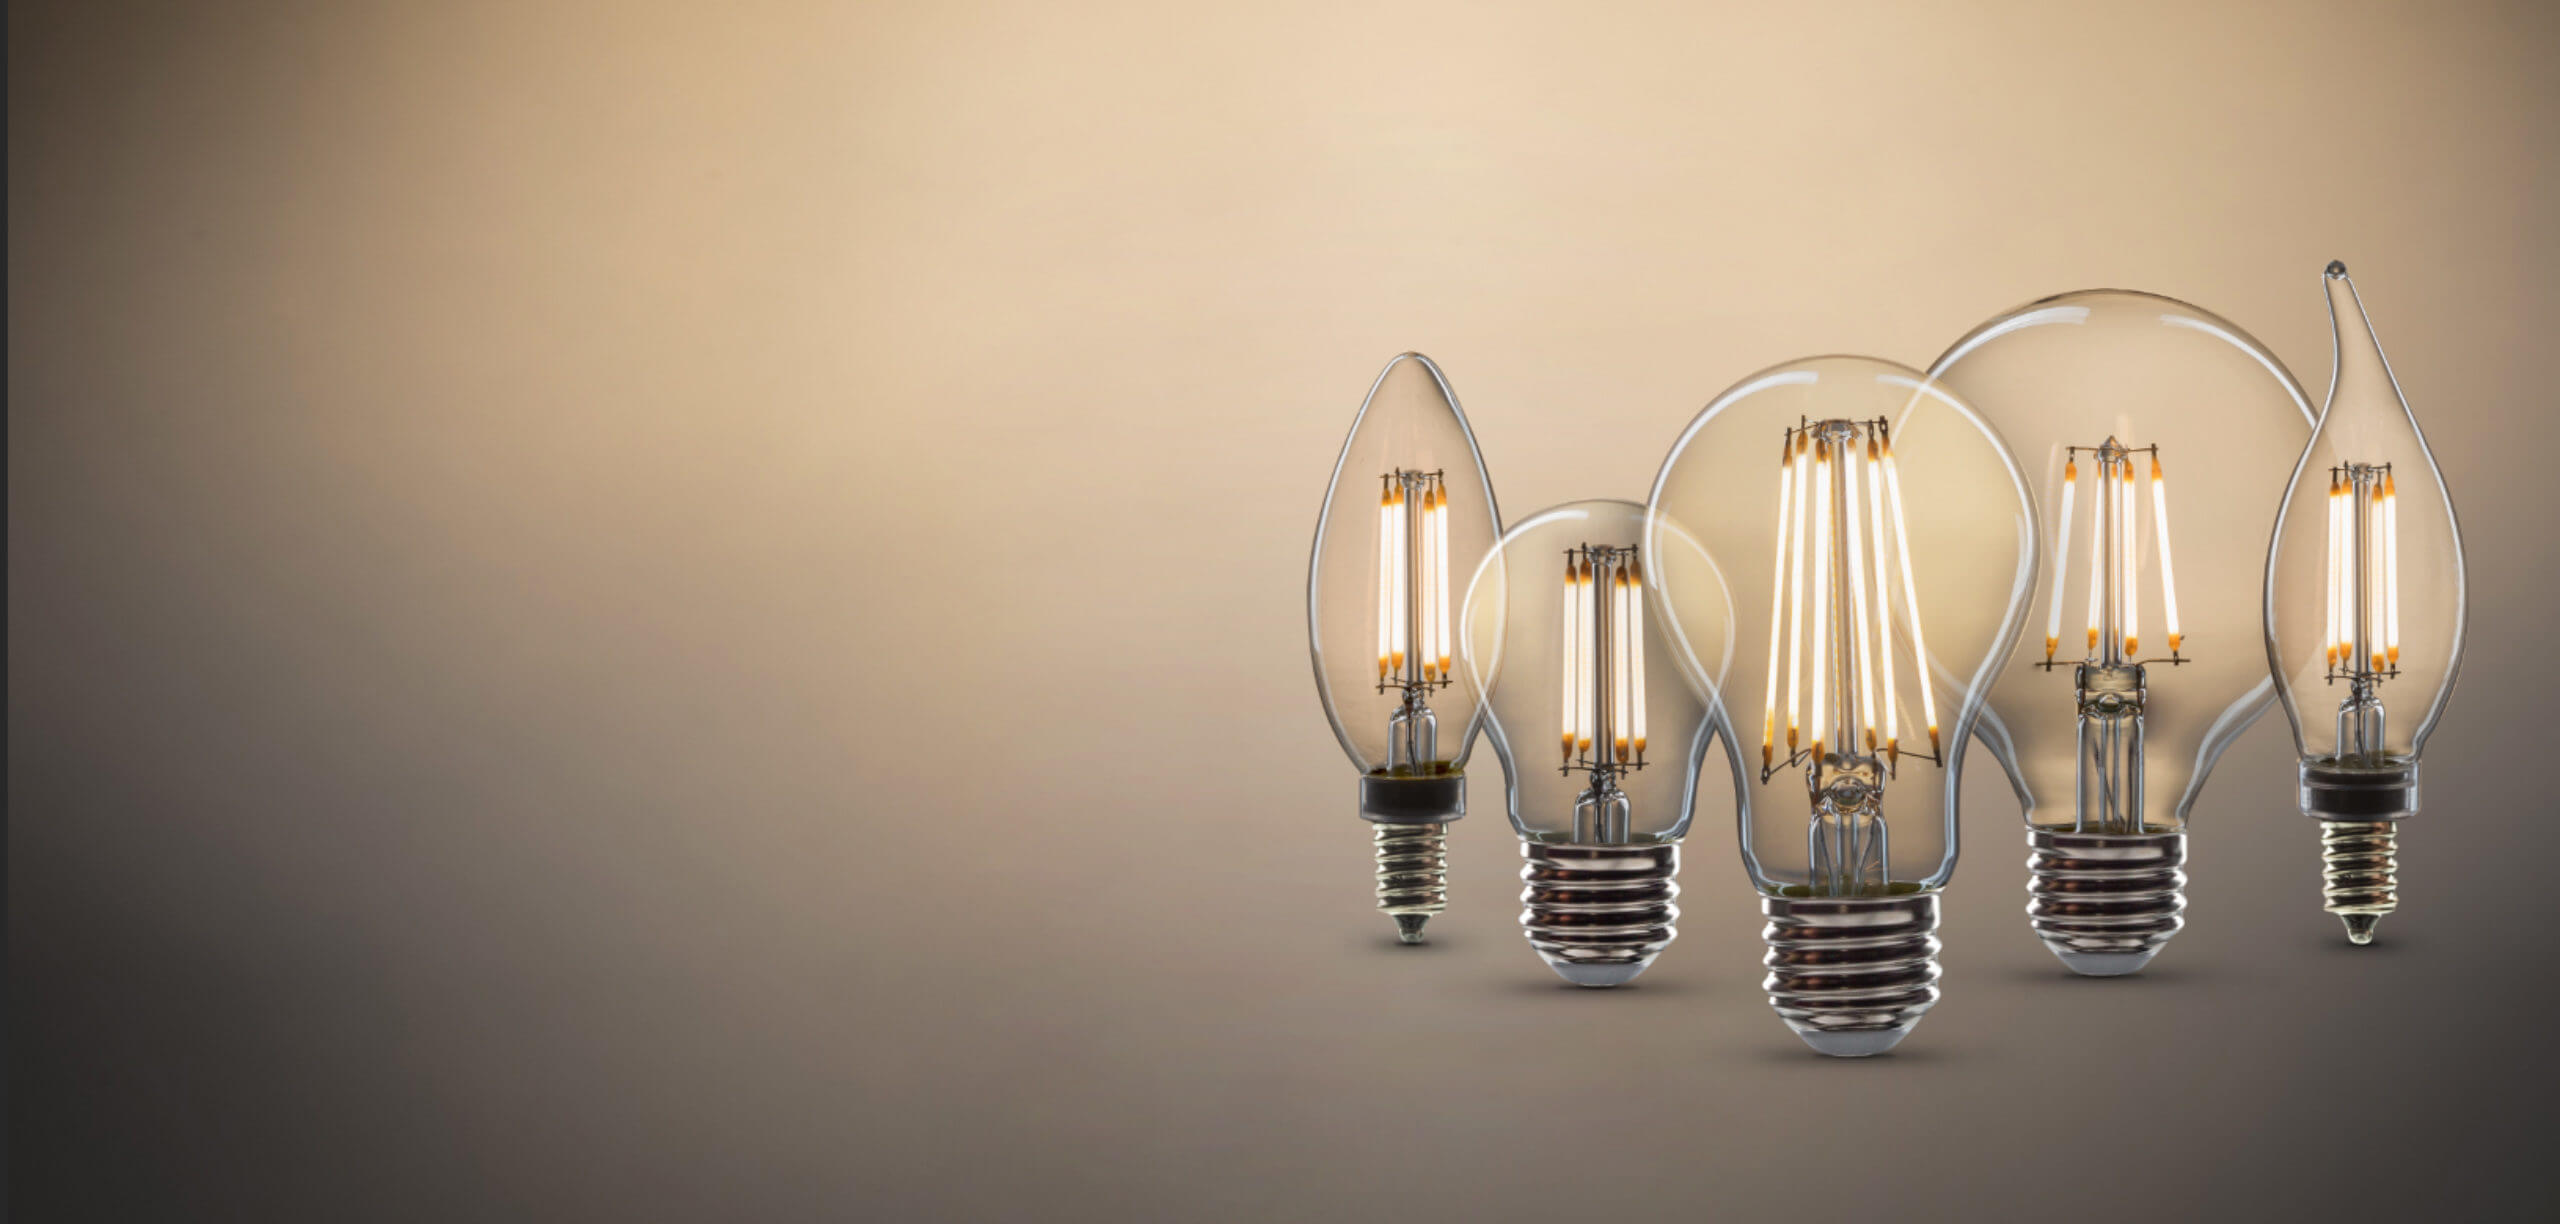 Innovative Energy Saving Lamps Cfl Led Lamps Amp More